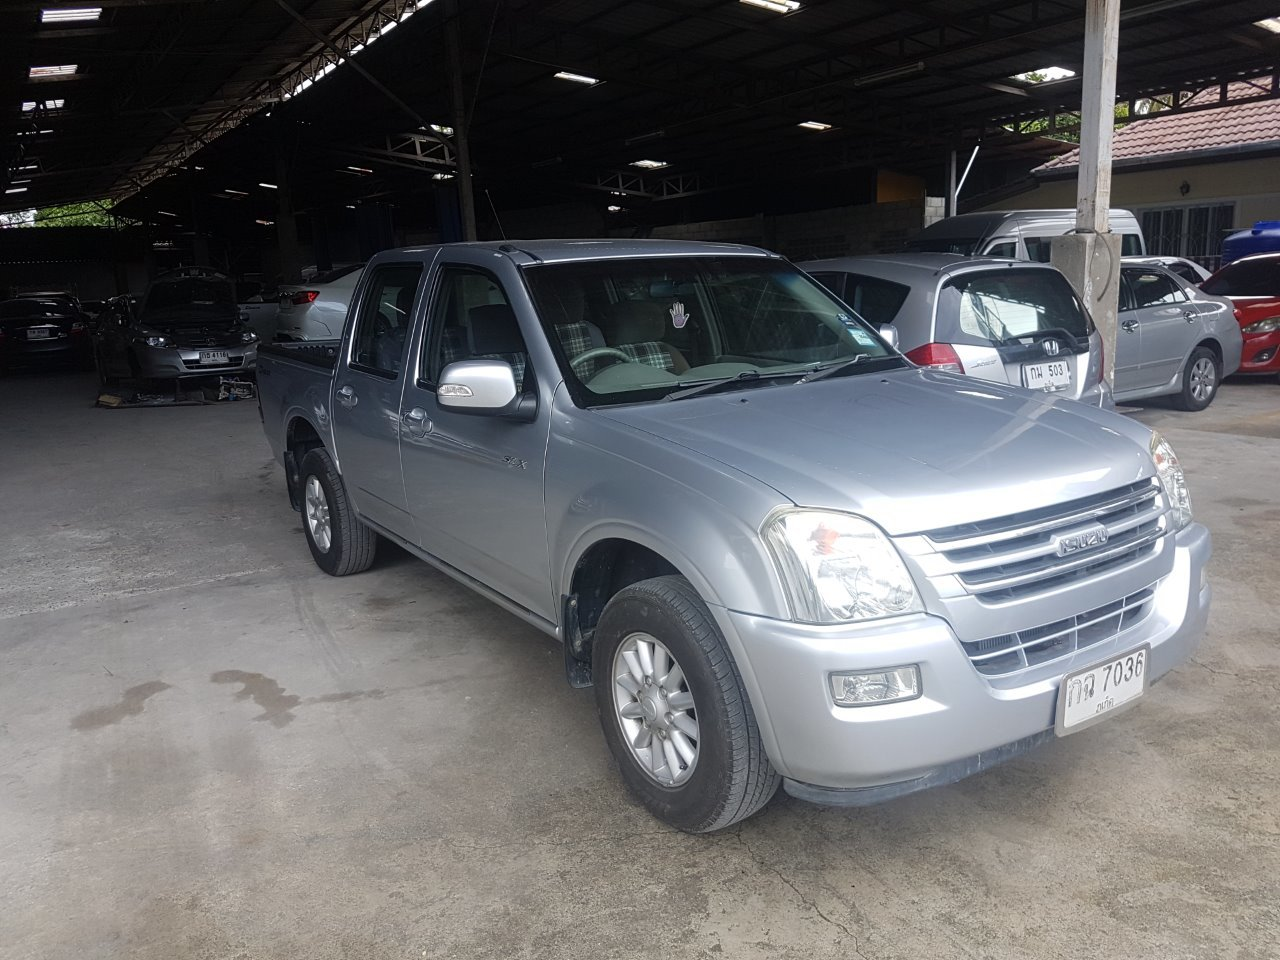 2006 Isuzu D-Max 3.0 exellent conditions with 94000 Kilometers